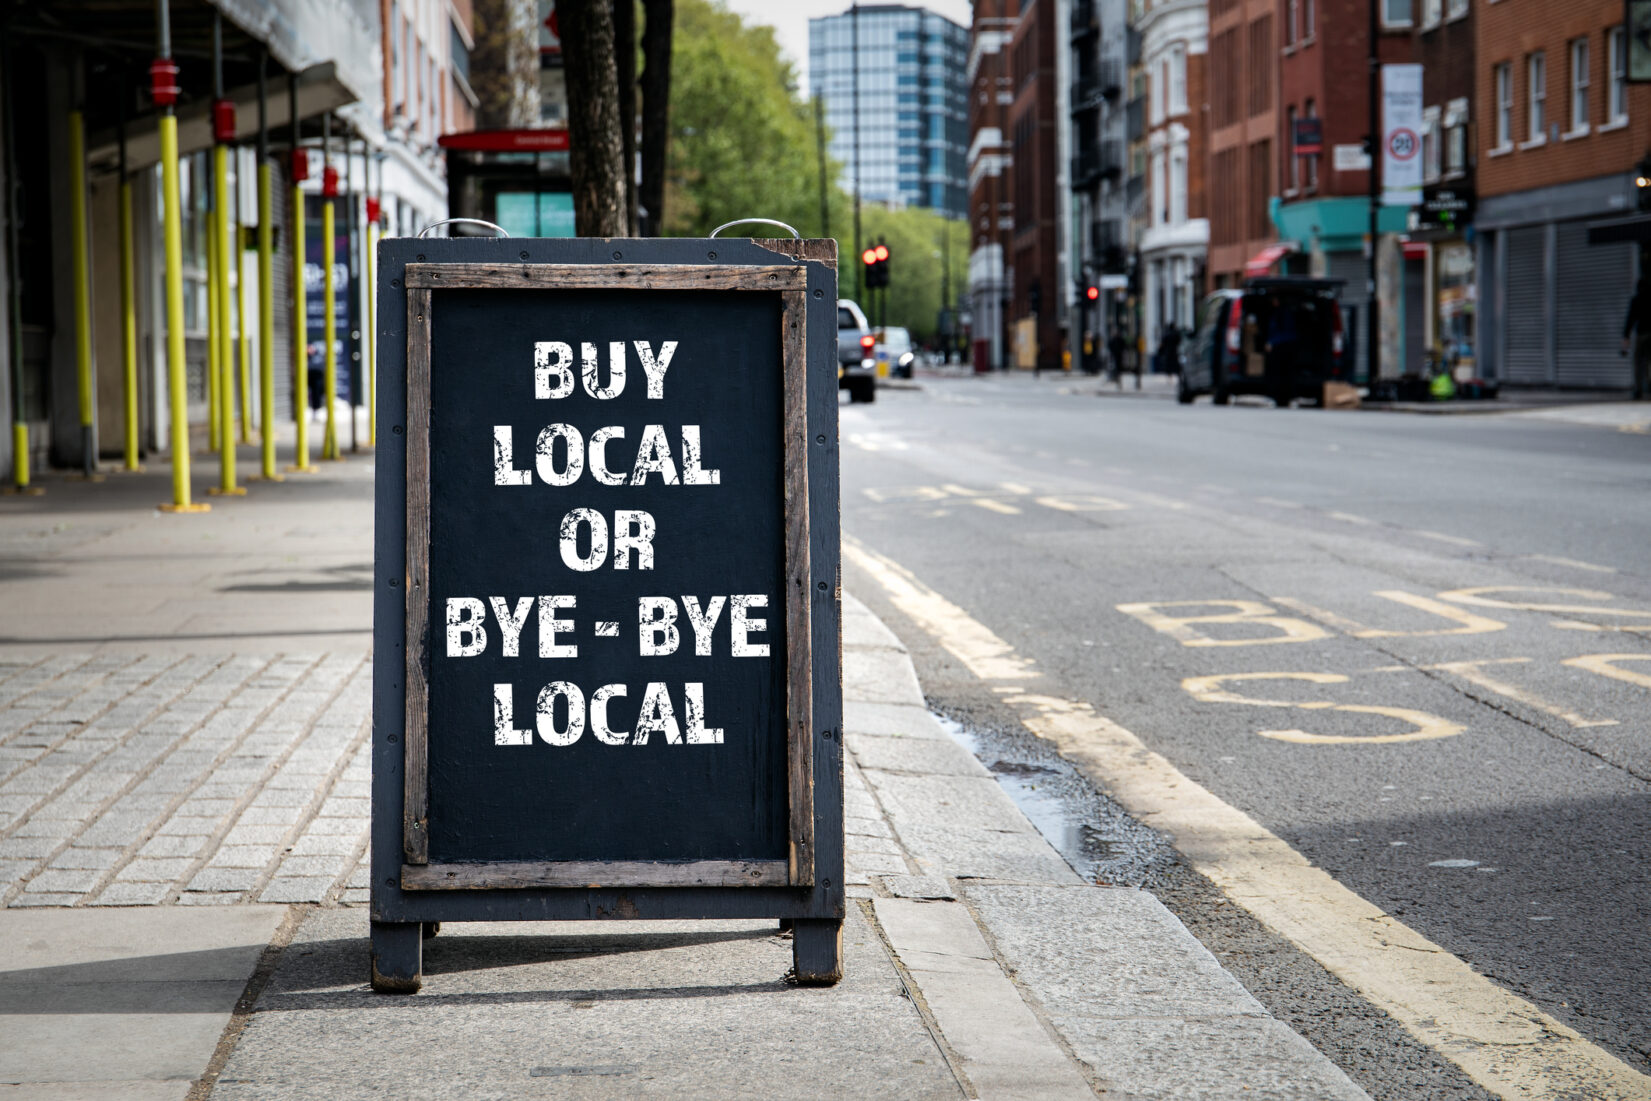 5 Benefits of Using a Local Lender